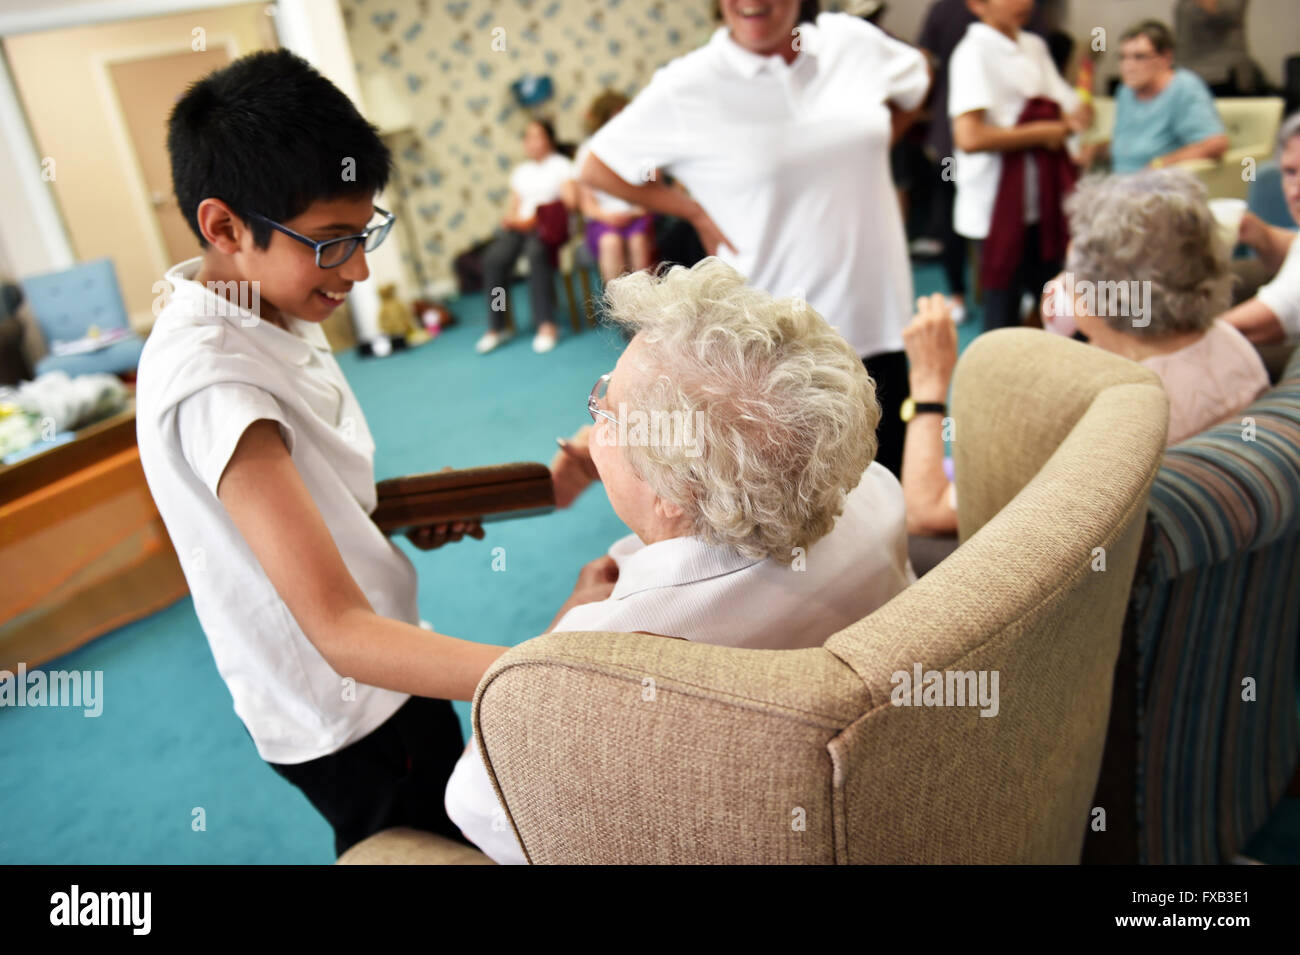 School children visit the elderly in a care home to foster good relations between the generations - Stock Image